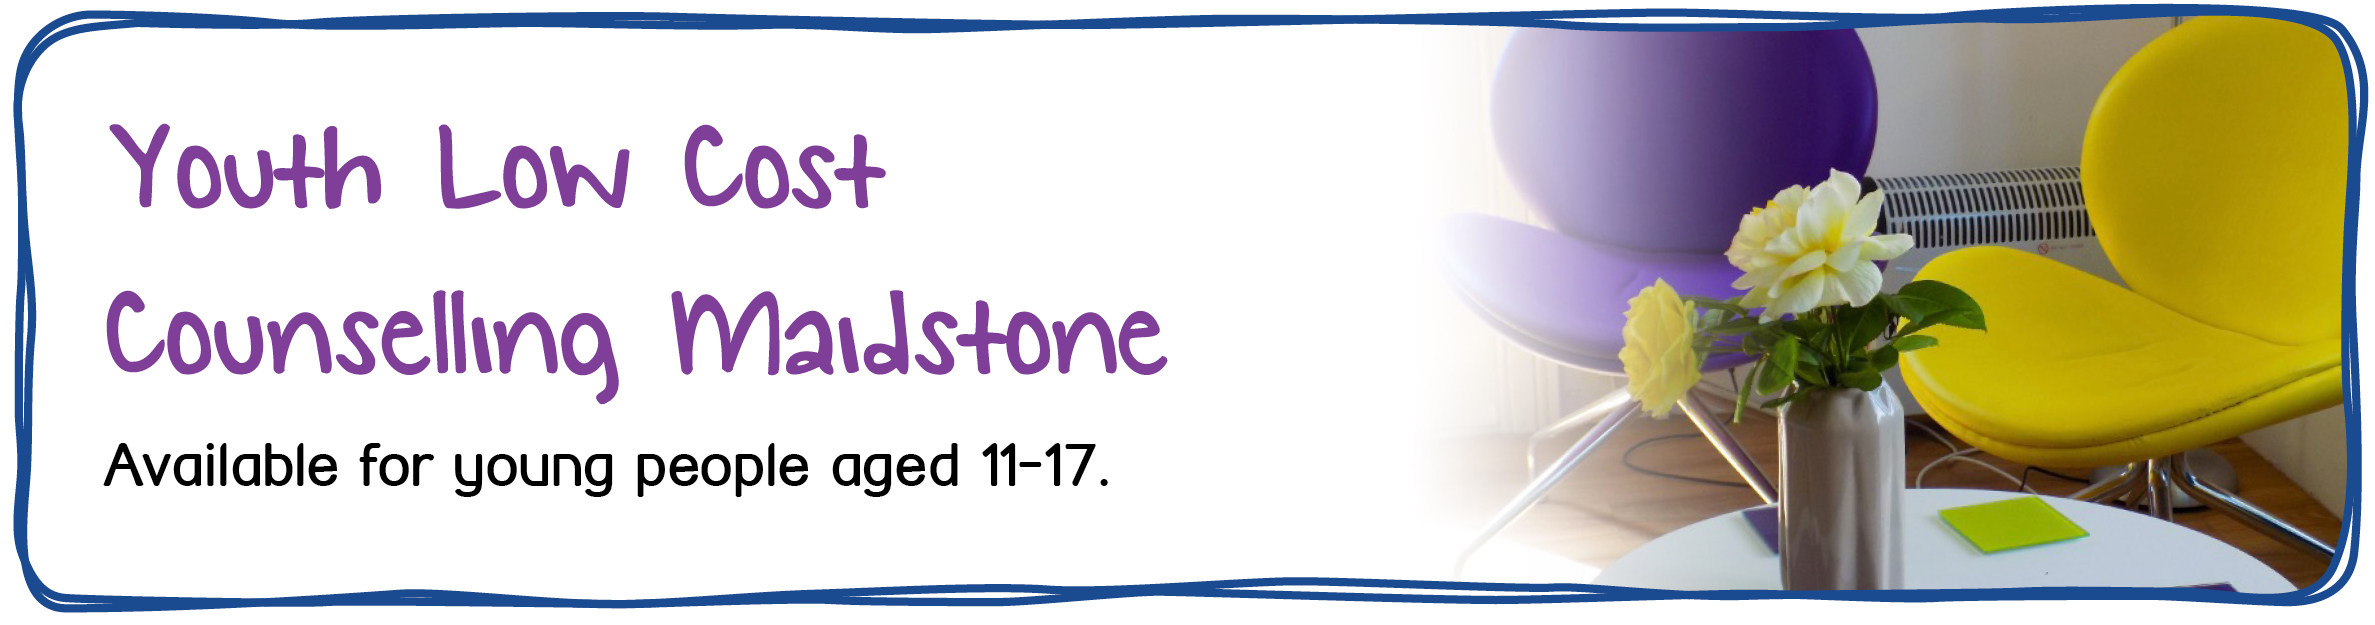 Youth Low Cost Counselling Maidstone . Available for young people aged 11-17.